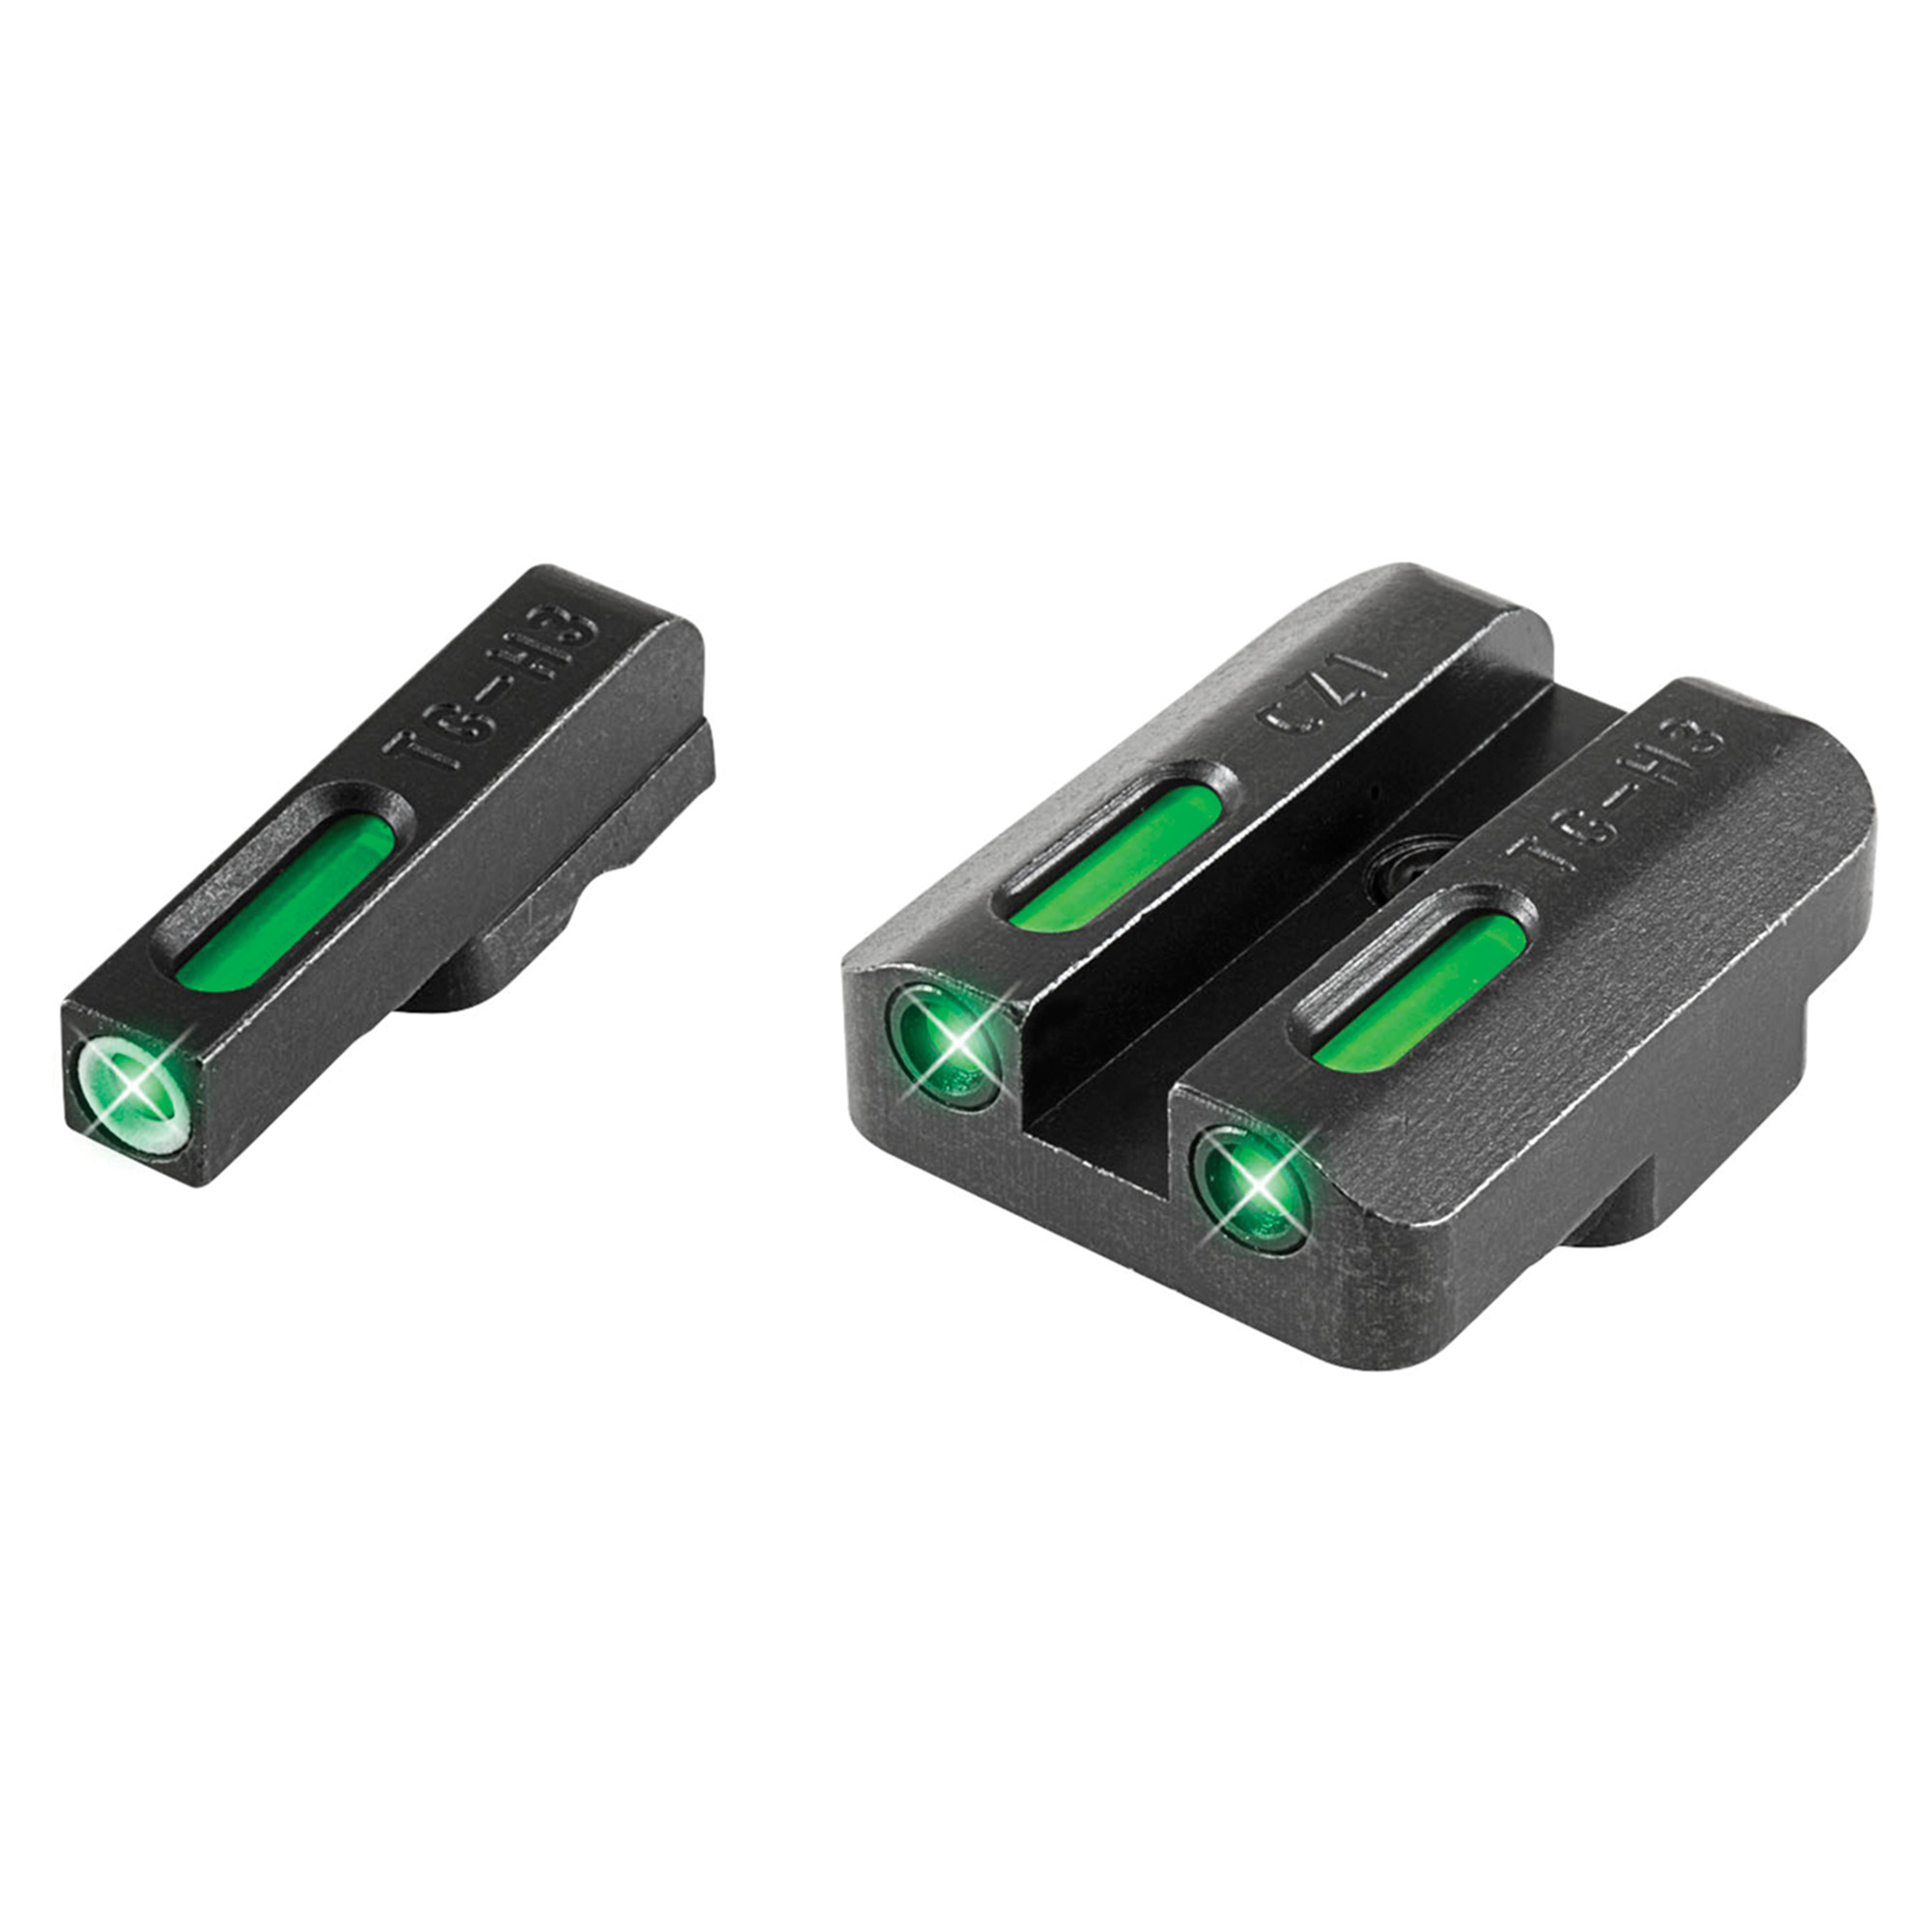 TruGlo TFX Standard Height CZ 75 Series Front/Rear Day/Night Sight Set Green Tritium 3-Dot Configuration Front White Focus Lock Ring Square Cut Rear Notch